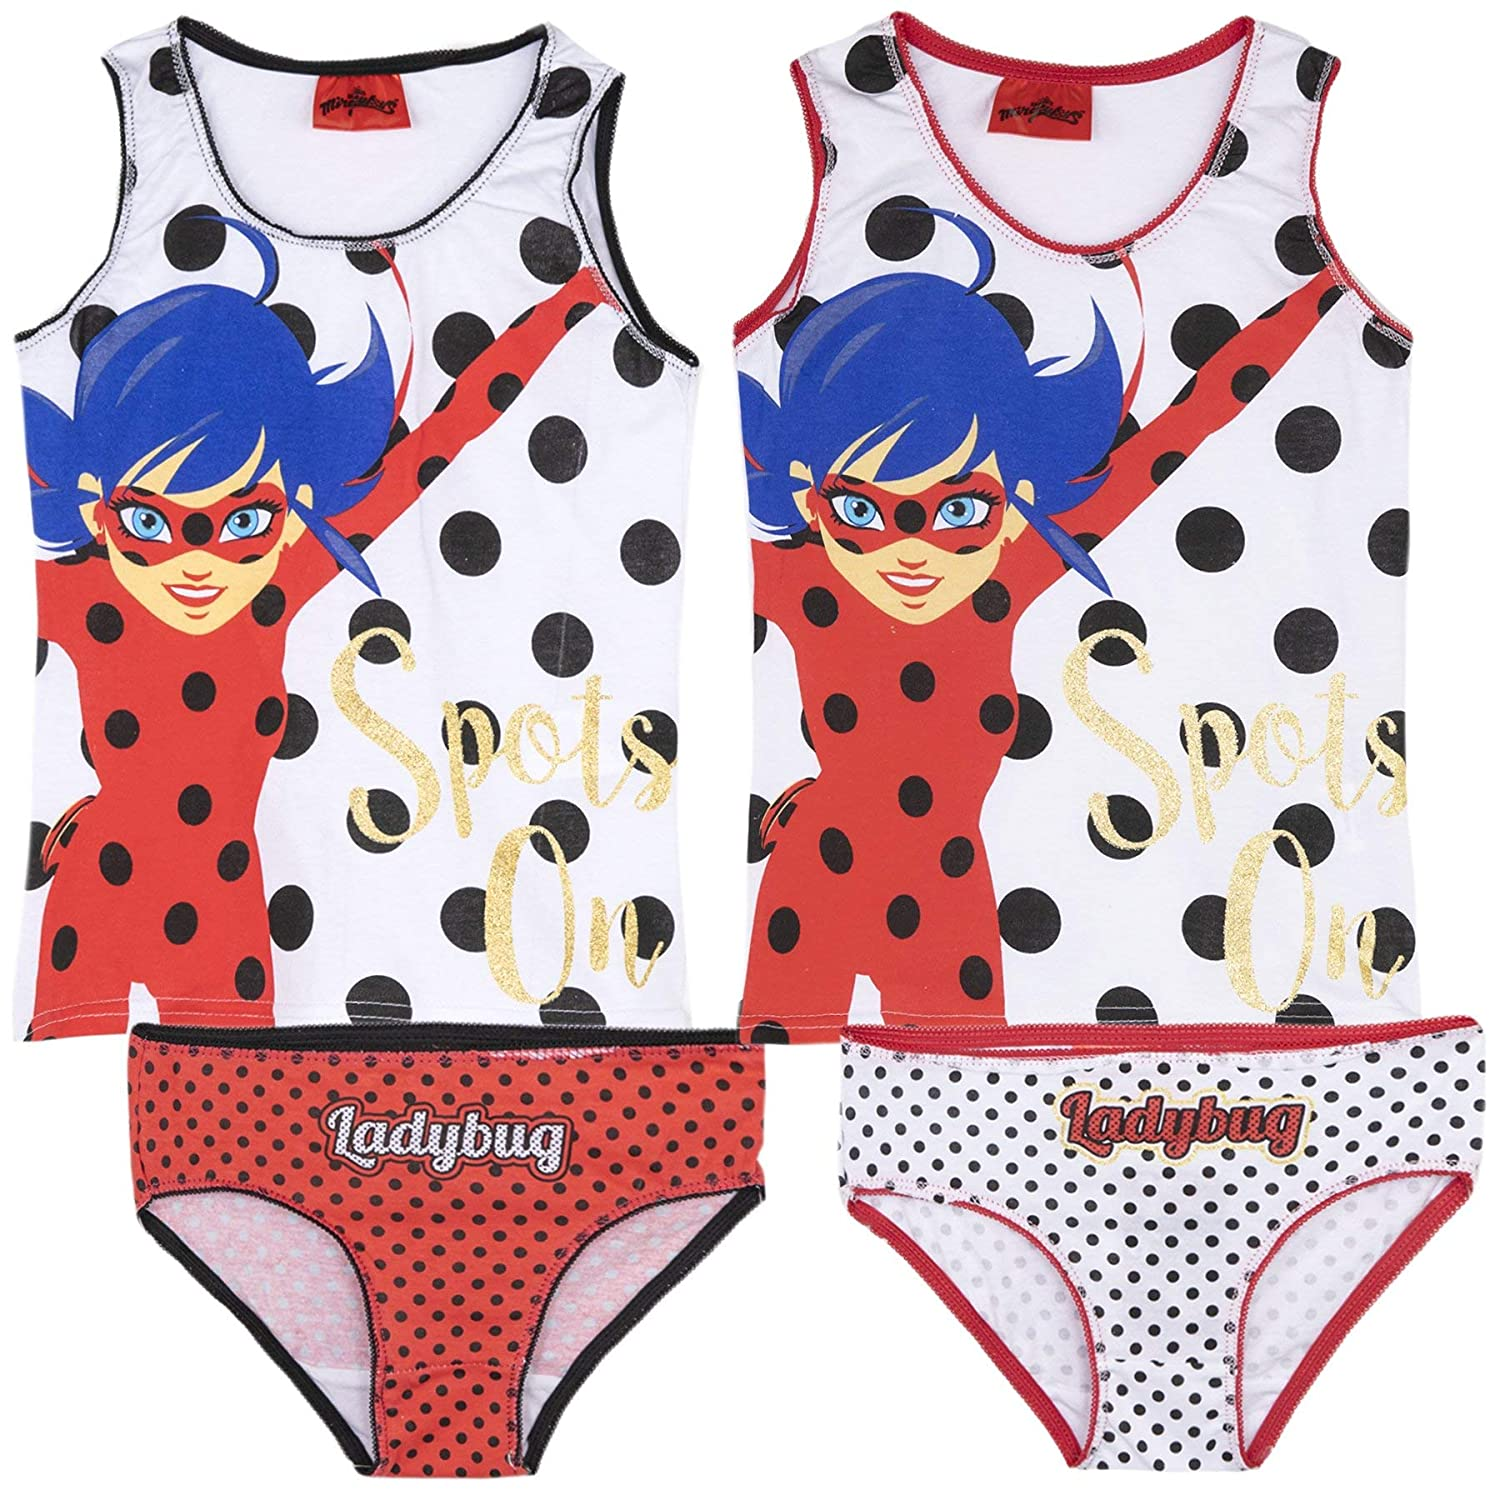 Official Character Girls Boys 100% Cotton Underwear Set Bulk 4 PCS Pack 2 Briefs + 2 Vest Tops Paw Patrol, Peppa, Miraculous, My Little Pony - 2-12 Years